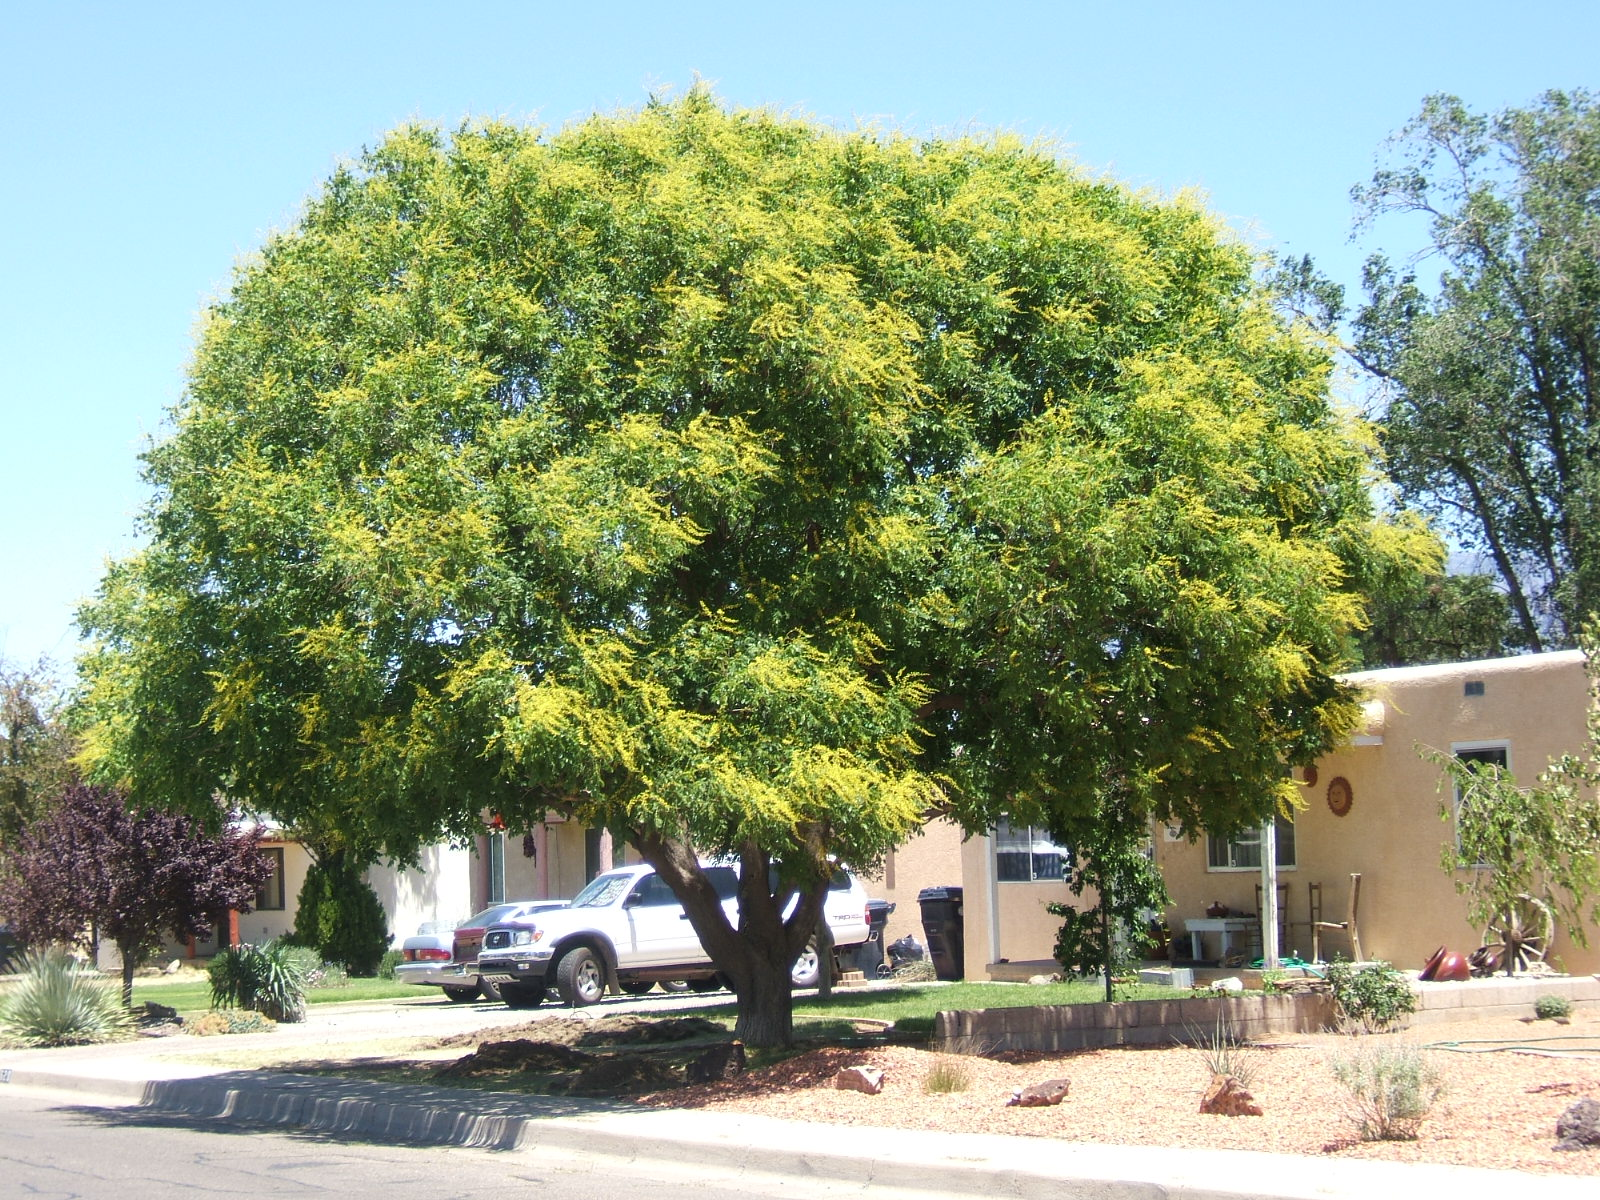 Trees That Please Nursery: Shade Trees for Small Spaces